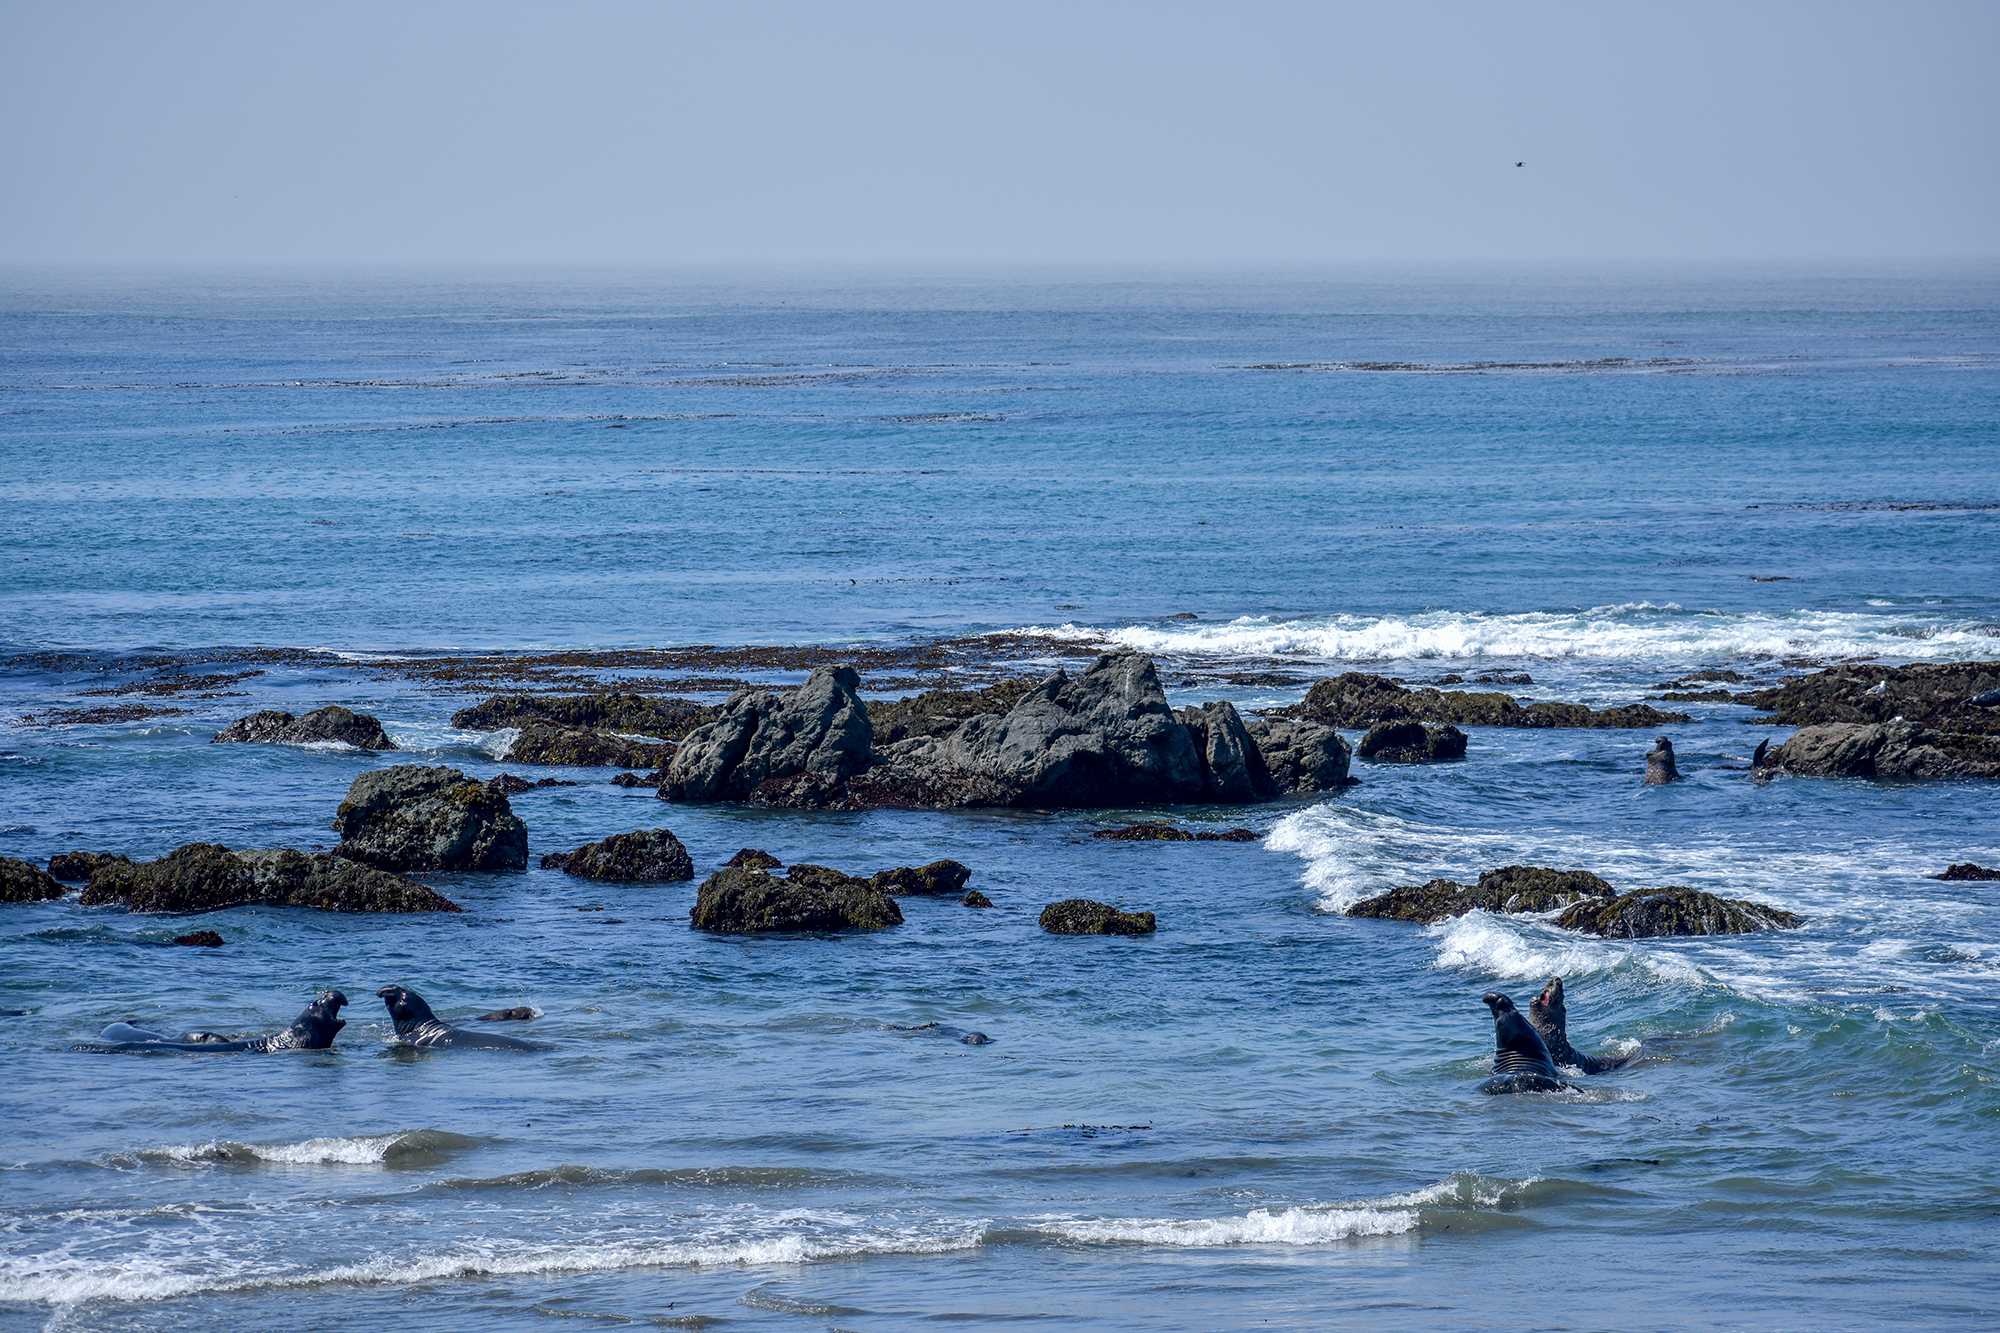 Elephant seals fighting in the shallows.